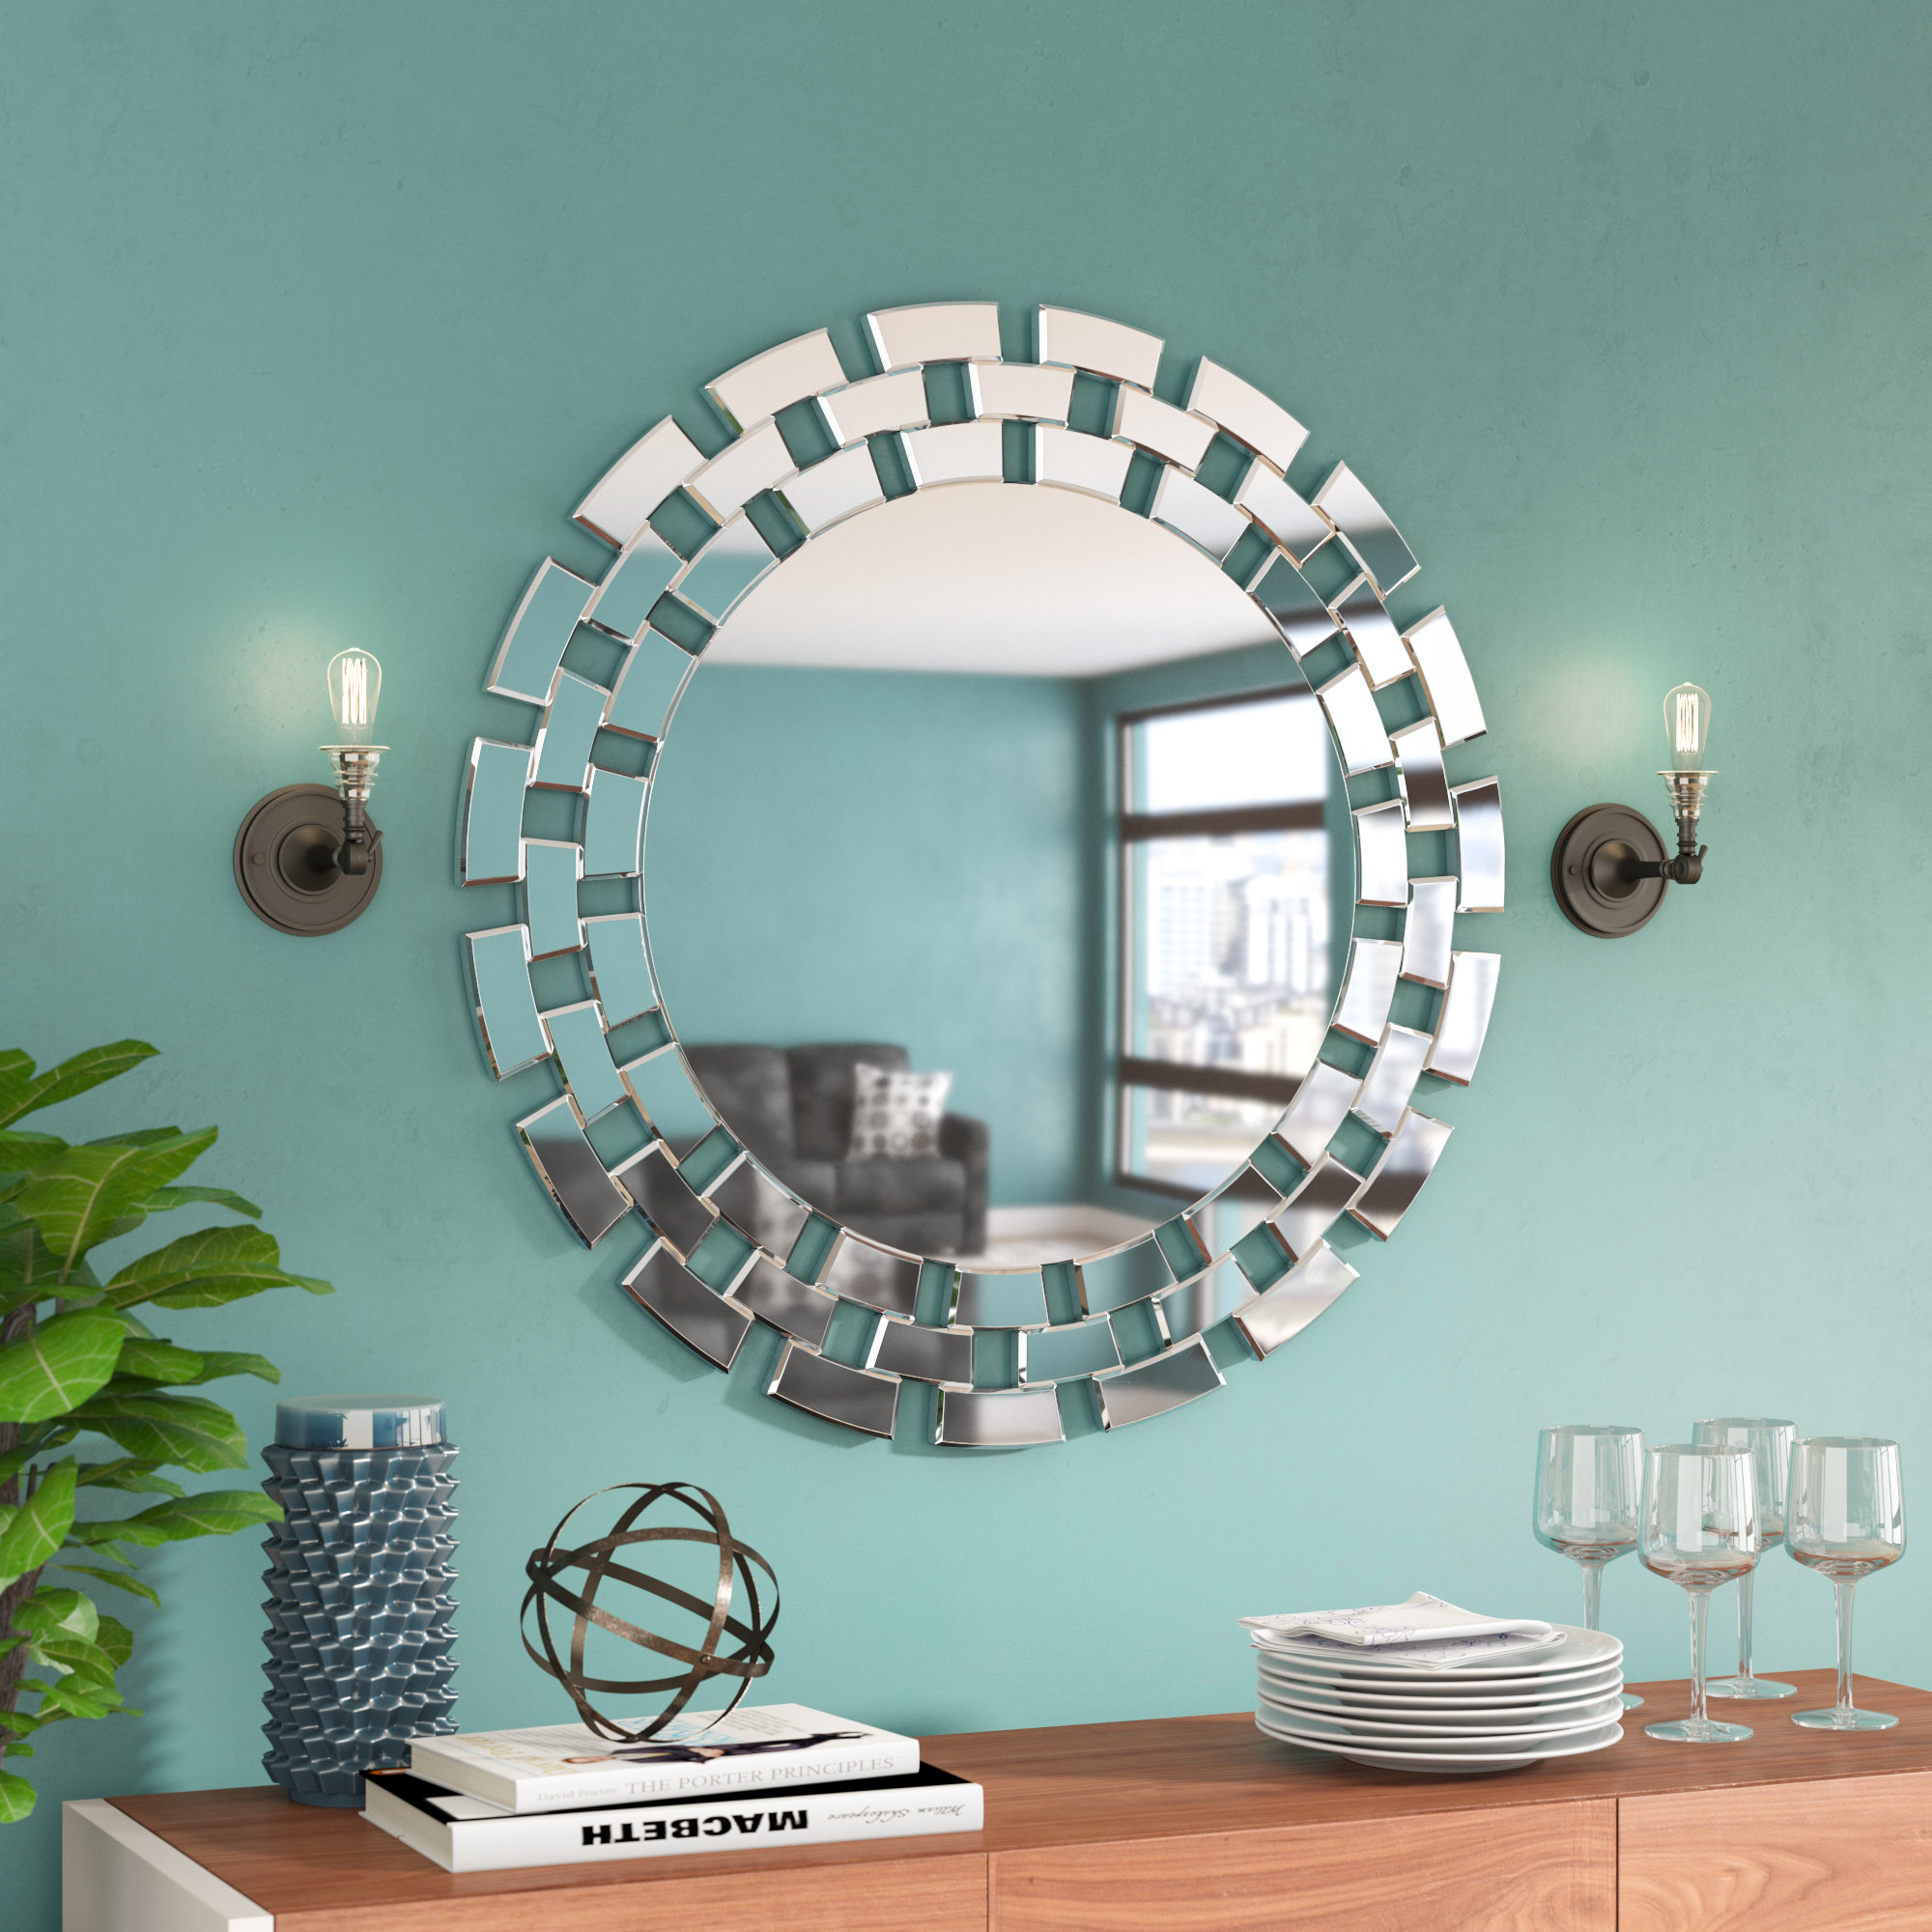 Round Entryway Mirror | Wayfair With Round Eclectic Accent Mirrors (View 22 of 30)